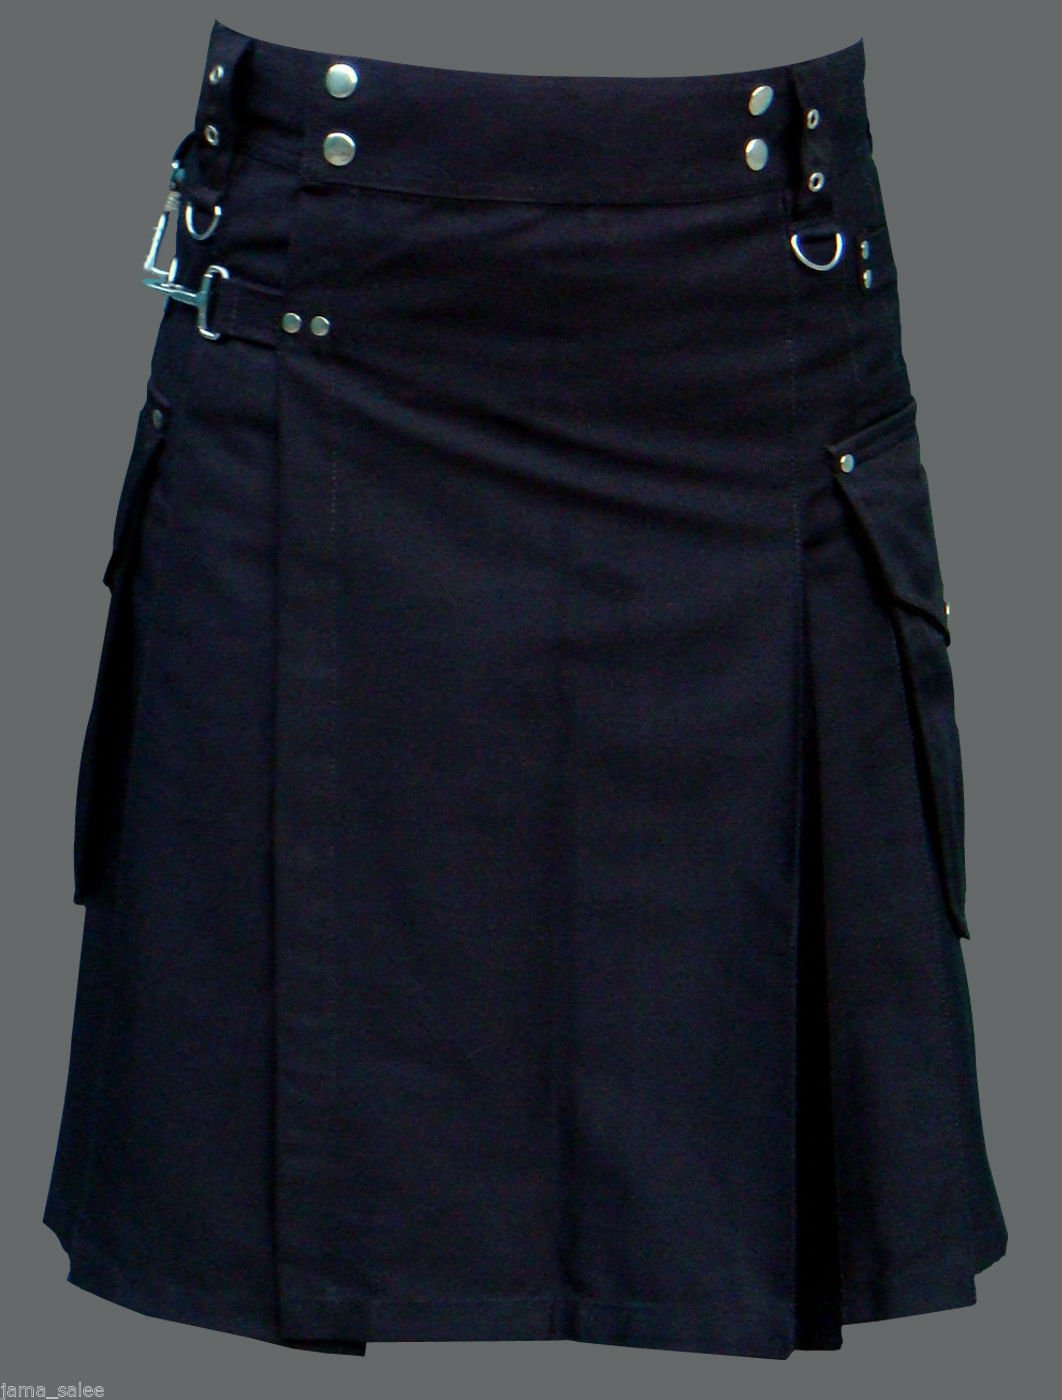 Men 56 Waist Handmade Black Deluxe Utility Kilt 100% Cotton With Cargo Pockets